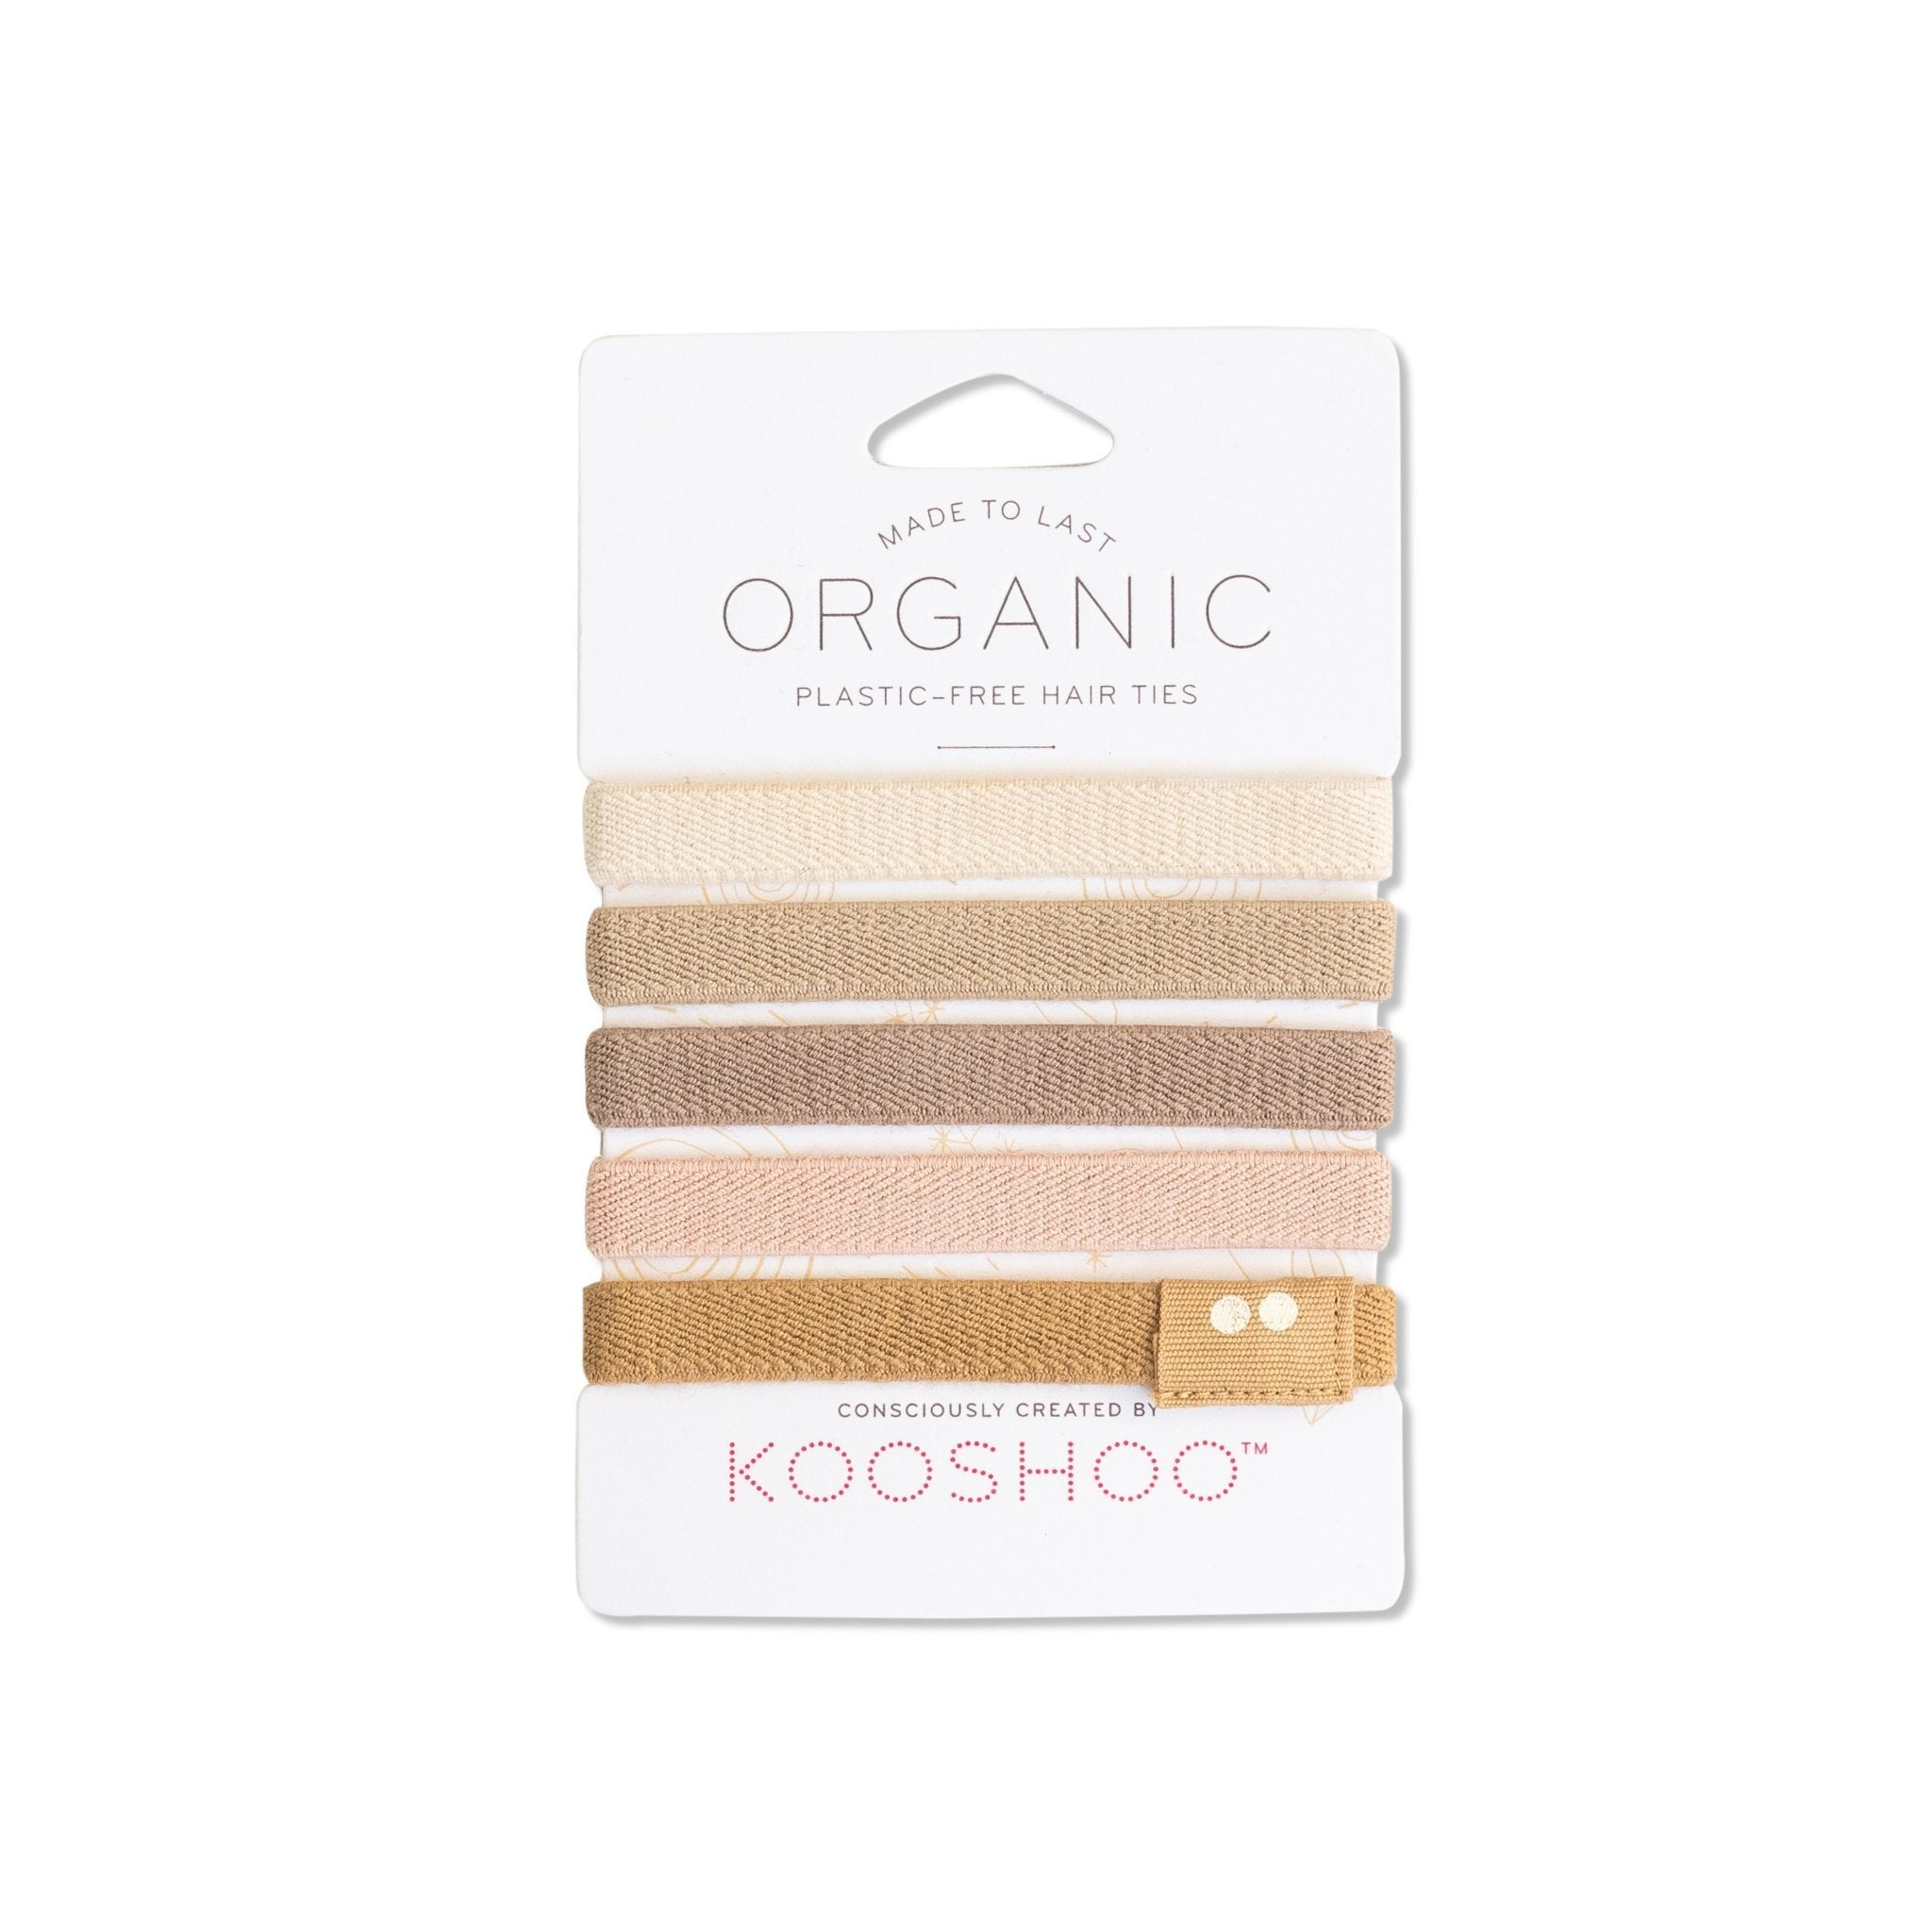 sustainable, zero waste, earth-friendly, plastic-free Plastic Free Organic Hair Ties - Bamboo Switch